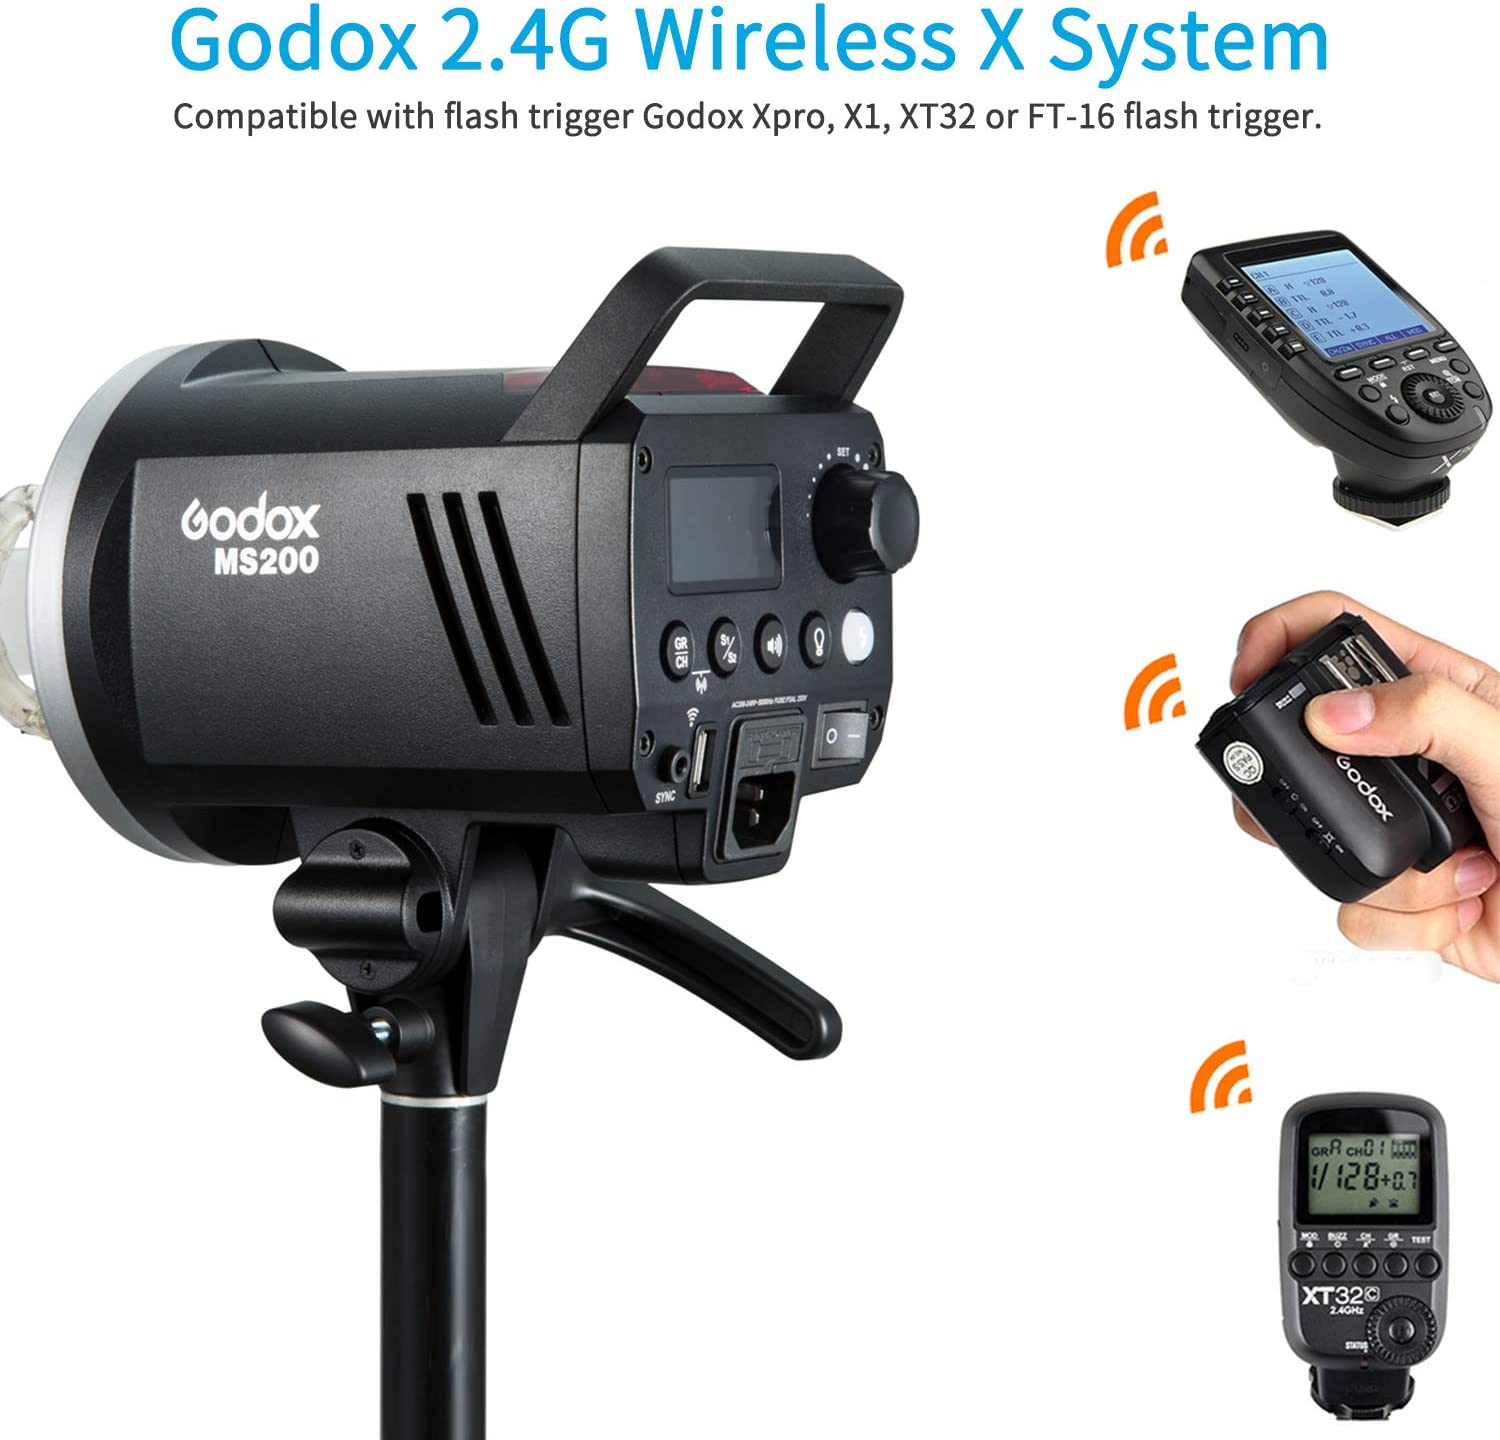 0.1-1.8s Recycle Time Outstanding Output Stability Godox MS200 Compact 200W Studio Flash,Small and Portable 2.4G Wireless X System GN53 5600K Monolight with Bowens Mount 150W Modeling Lamp